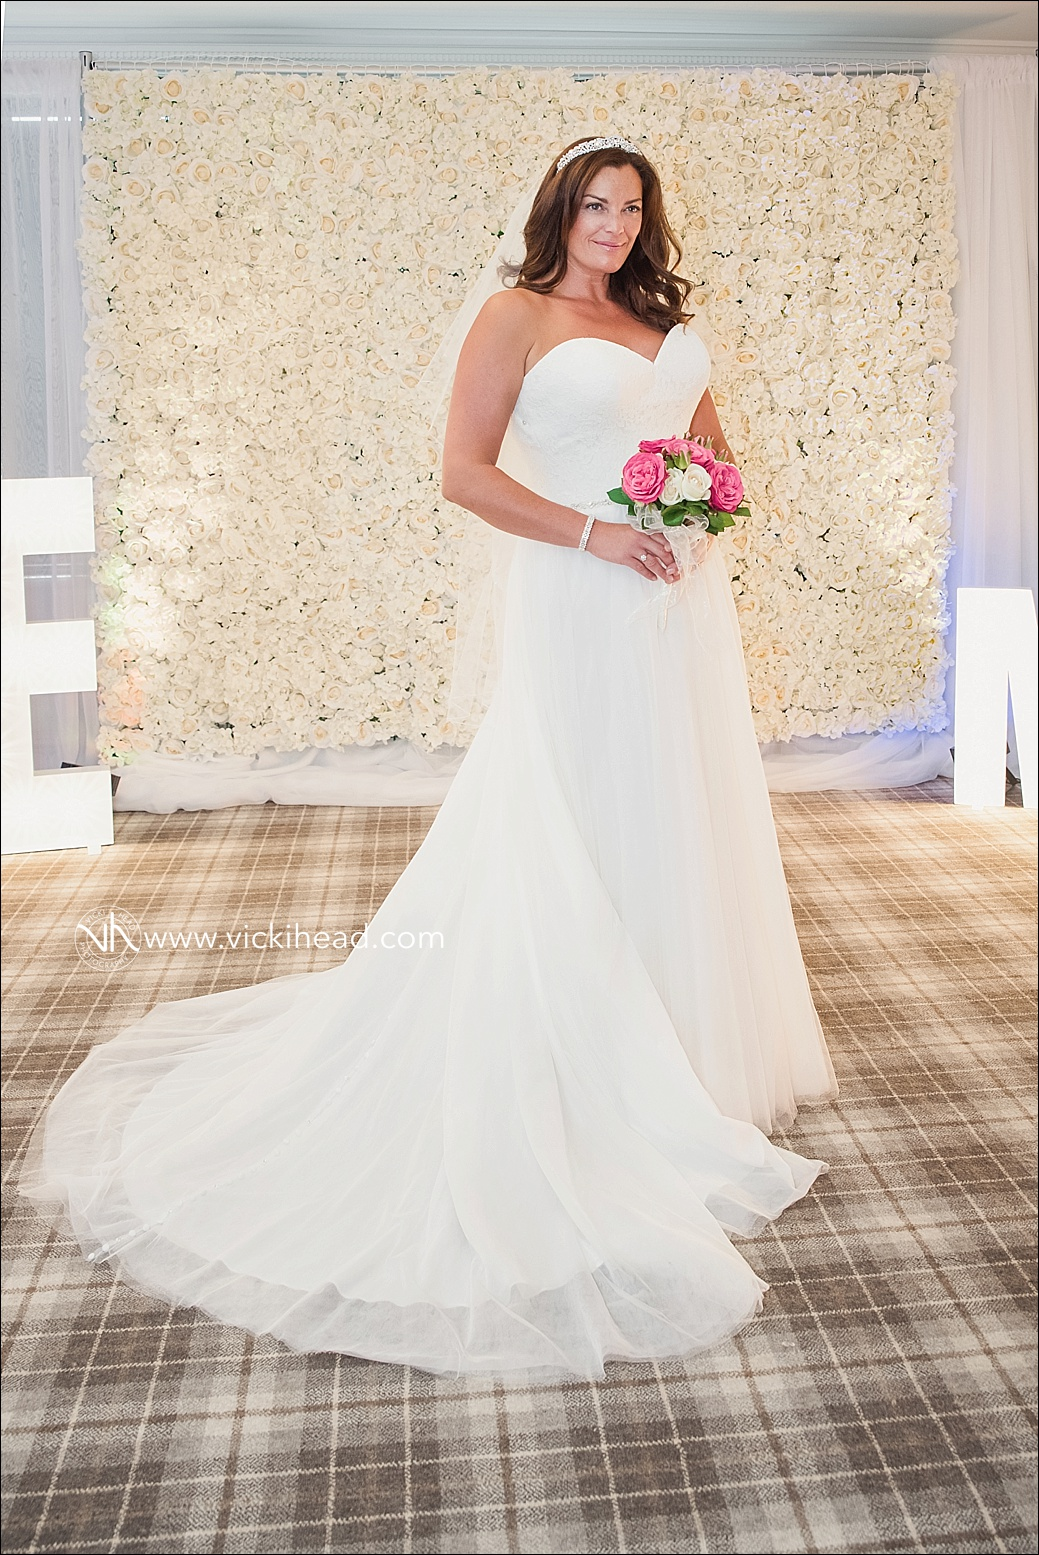 Zoe modelling a wedding dress from The Ivory Room Bridal Boutique